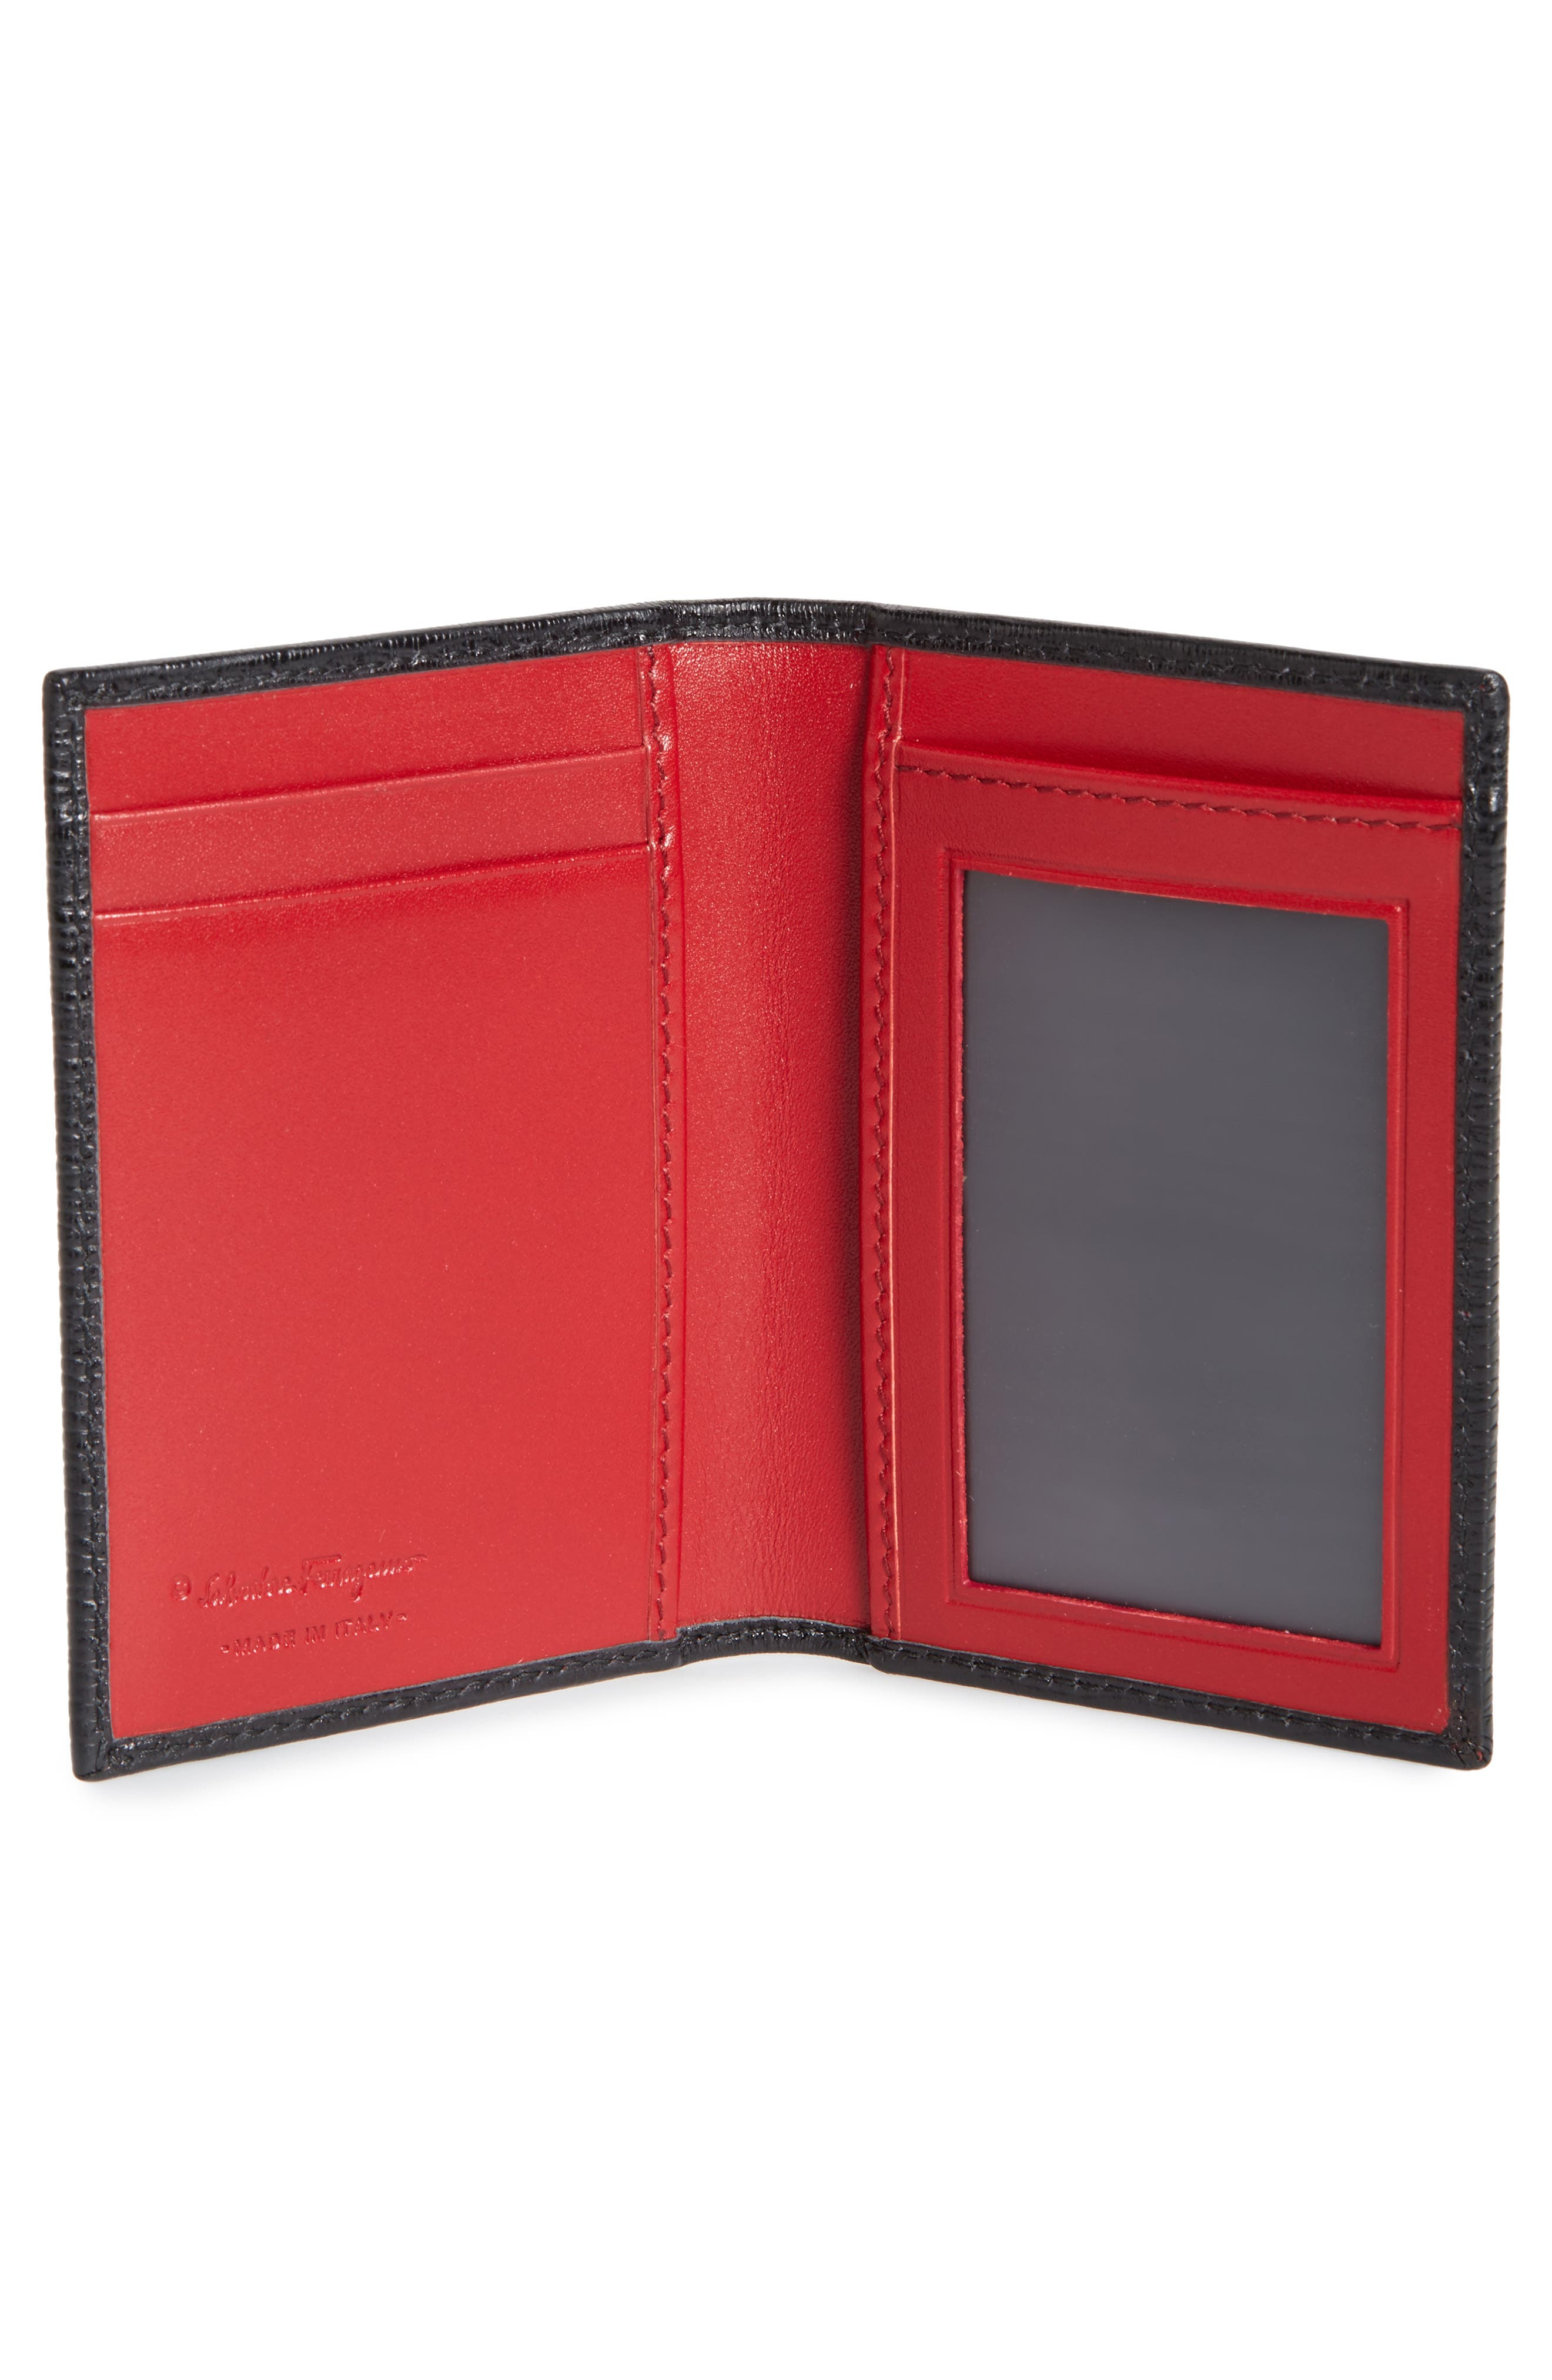 Revival Leather Folding Card Case,                             Alternate thumbnail 2, color,